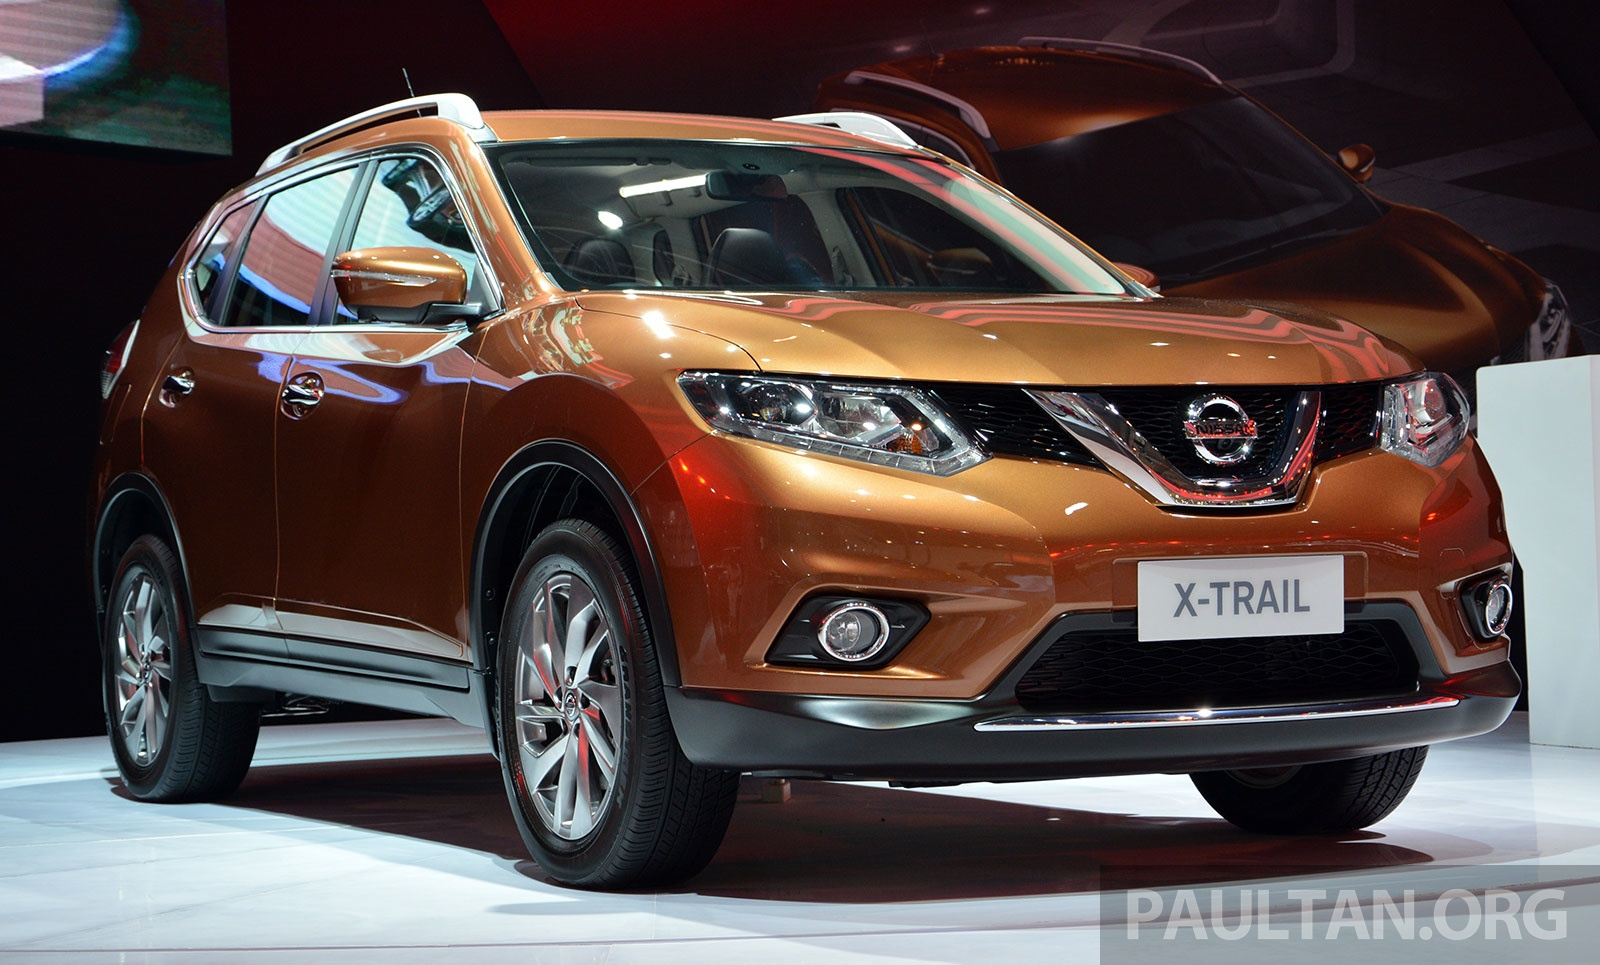 New Nissan Extrail Indonesia.html | Autos Post